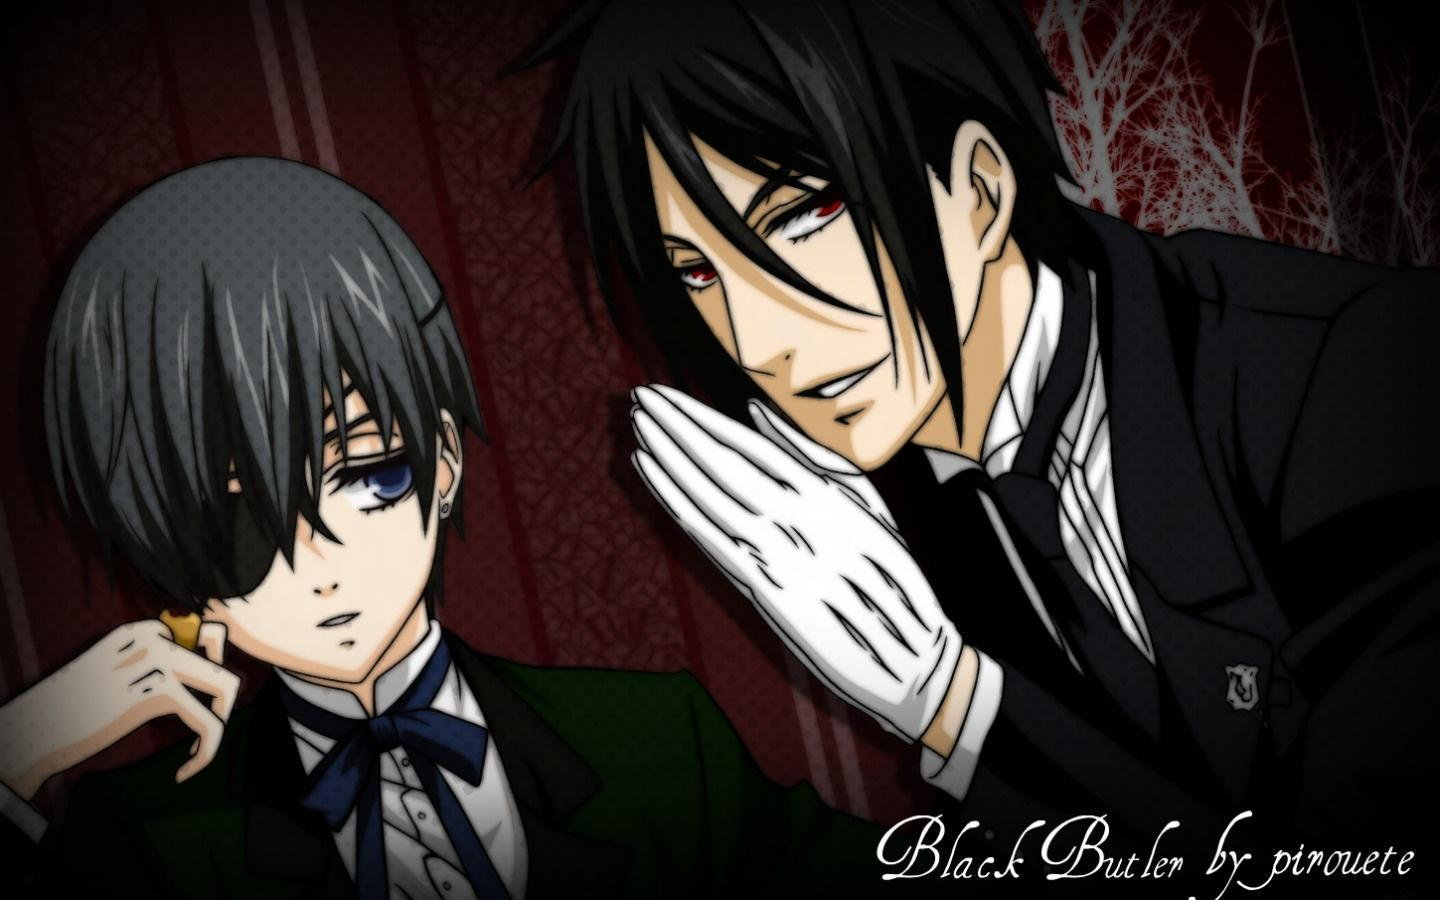 What is your favorite character from Black Butler?